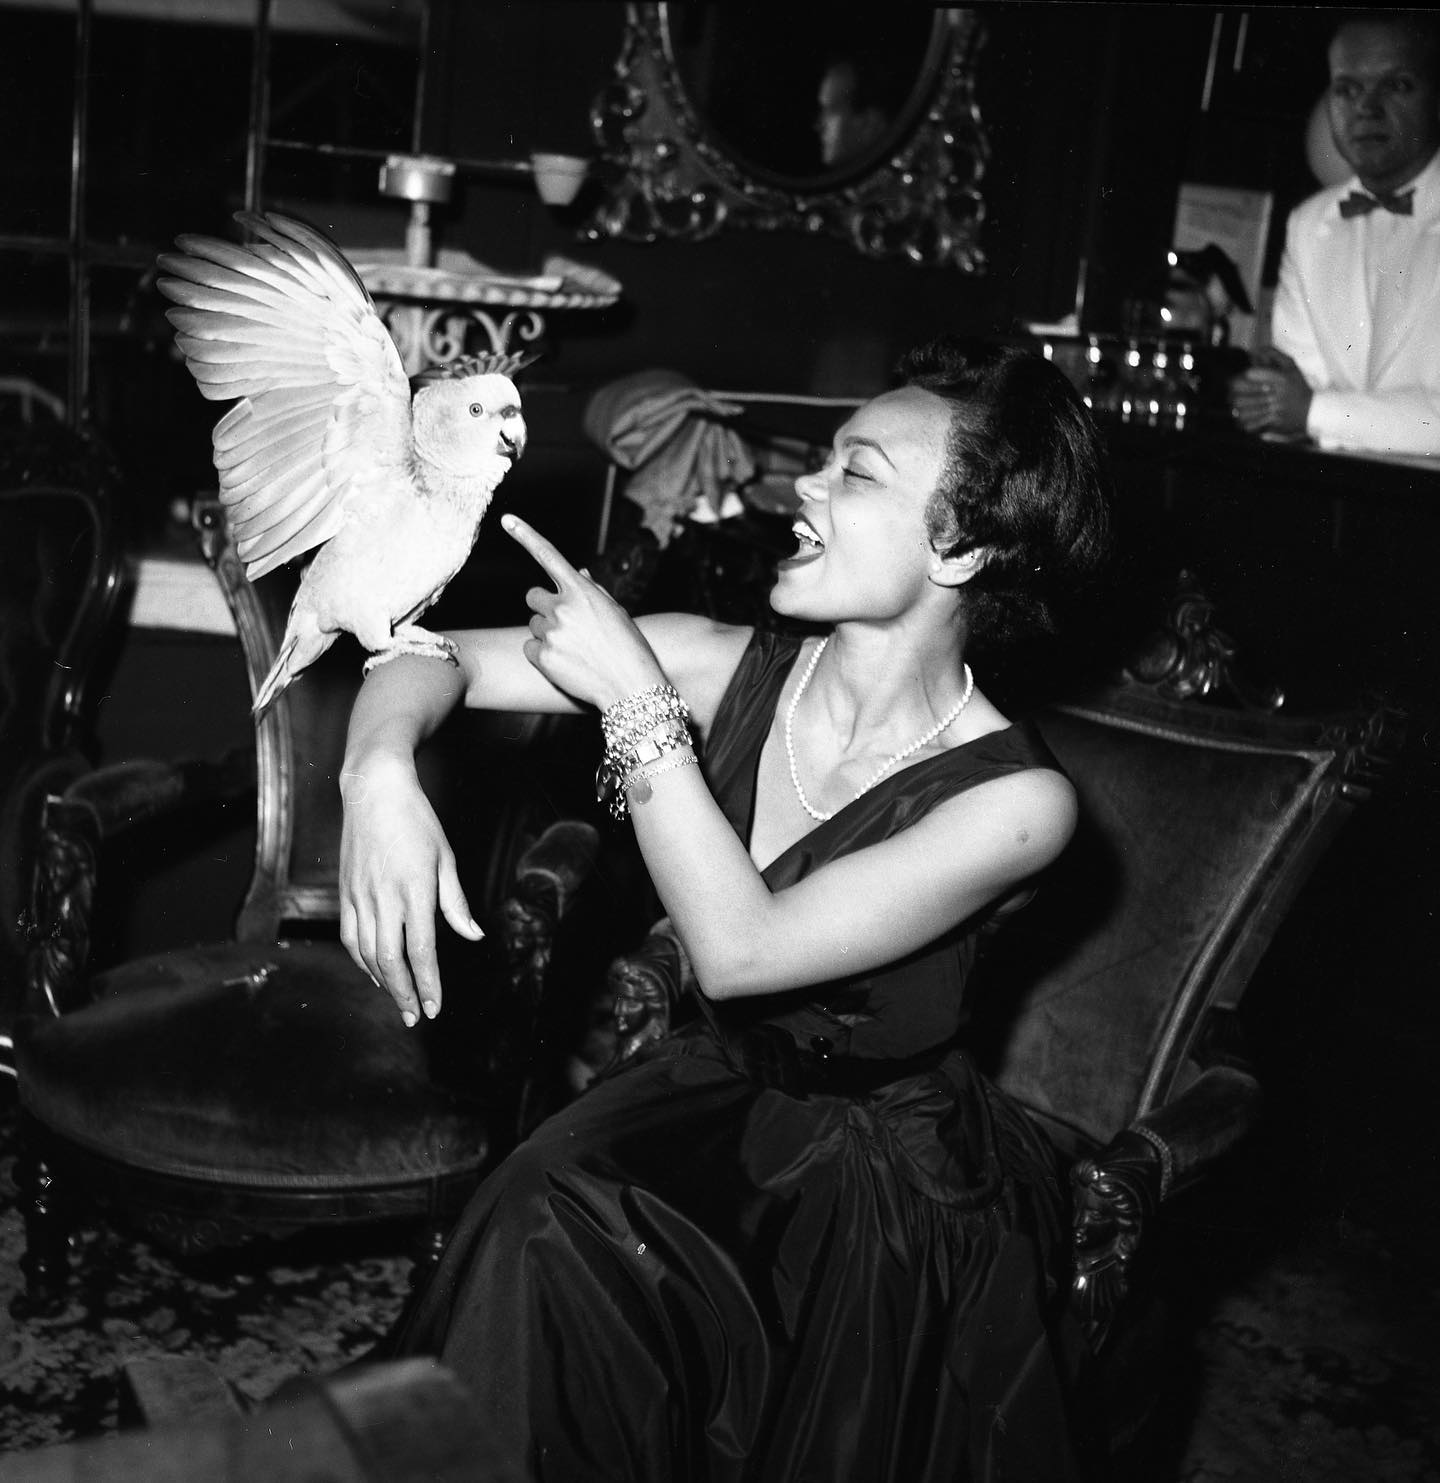 Eartha skirt, circa 1960 🕊  📷©️André de Dienes/MUUS Collection  #andrededienes #muuscollection #earthakitt #bird #cockatoo #parrot #petbird #musician #celebrity #photography #photo #photooftheday #picoftheday #musician #photographyarchive #archive #fromthearchives #onthisday #photographer #blackandwhite #blackandwhitephotography #1960 #portrait #flashphotography #vintage #vintageprint #silvergelatinprint #art #beautiful #nyc #newyorkcity